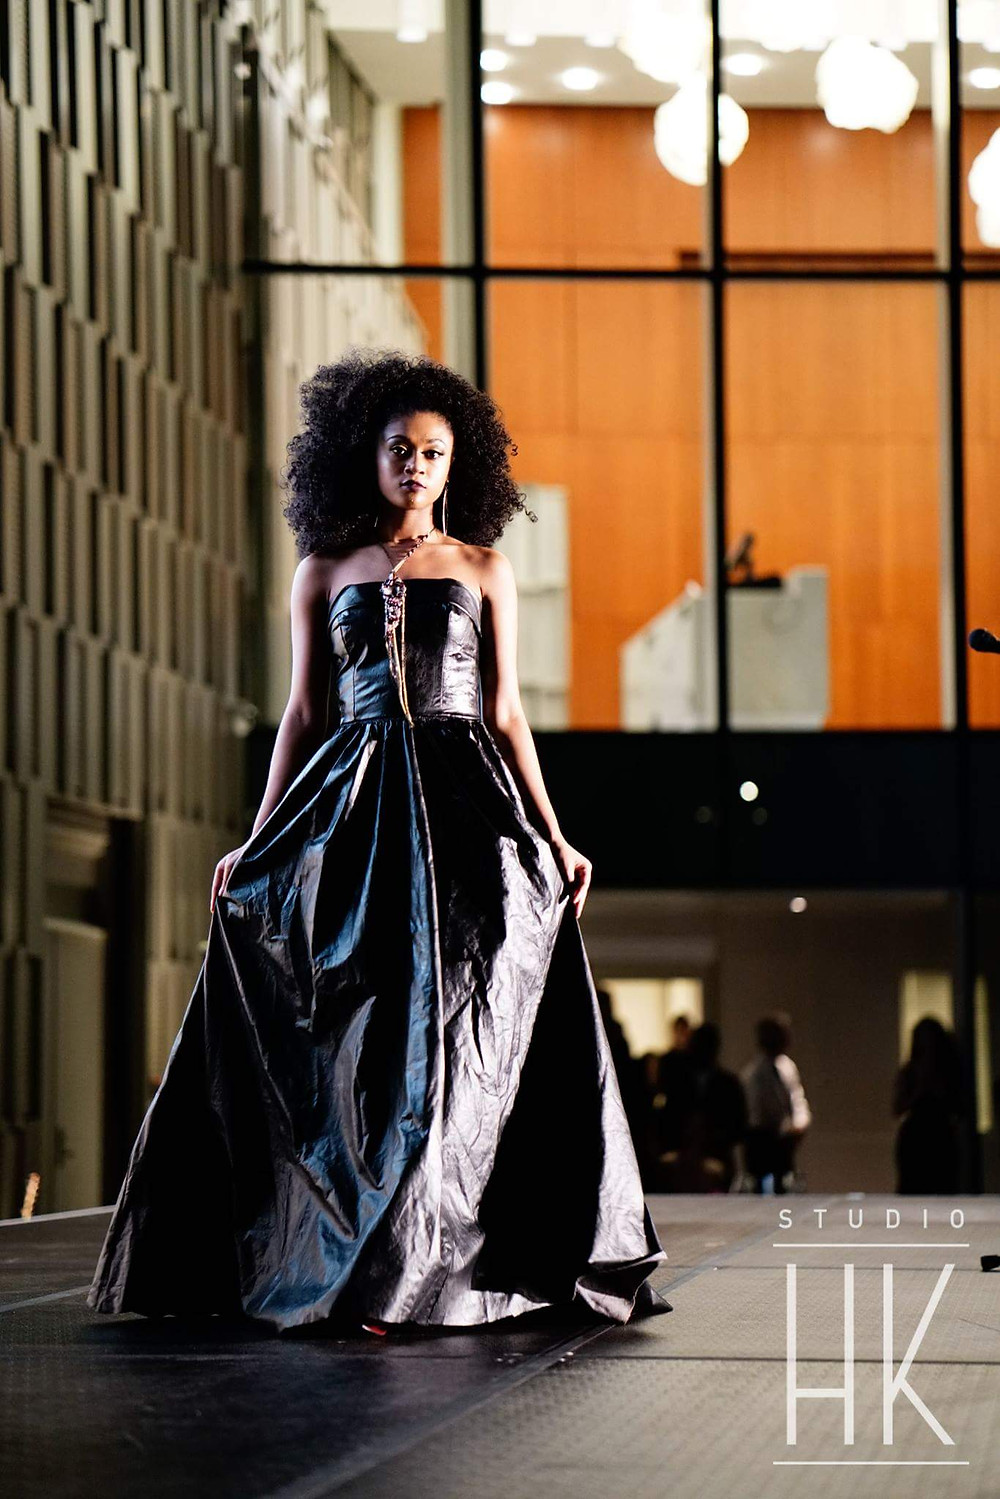 The Lanier collection was featured by breakout designer Daiquonne Lanier